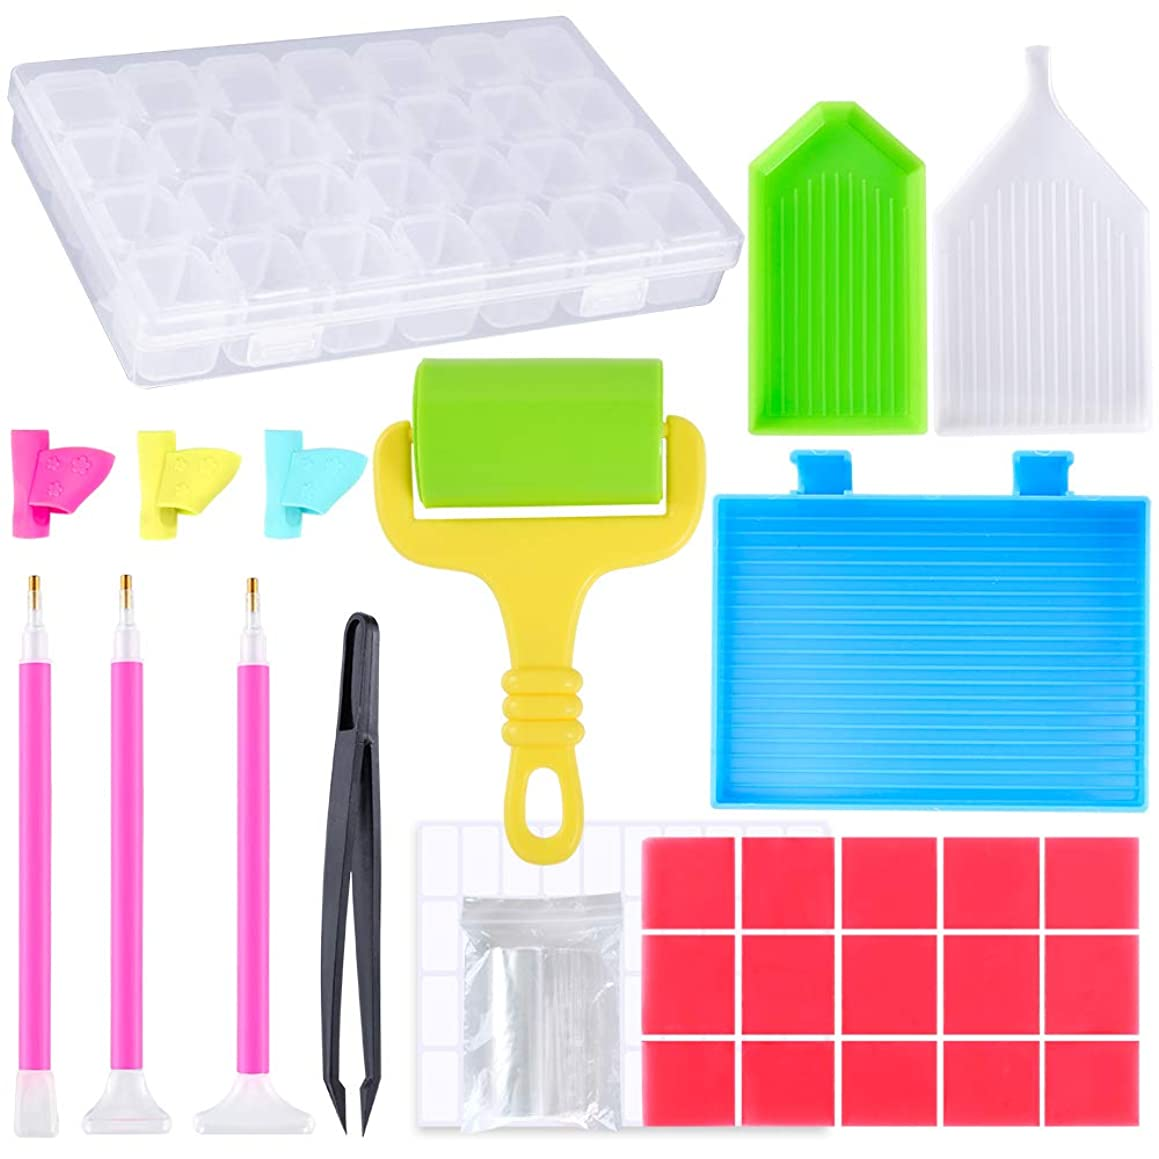 PP OPOUNT?50 Pieces DIY Diamond Painting Cross Stitch Tool Including Diamond Stitch Pen, Diamond Painting Plastic Roller, Drill Pen Grips, Plastic Tray and Diamond Embroidery Box for Arts Craft